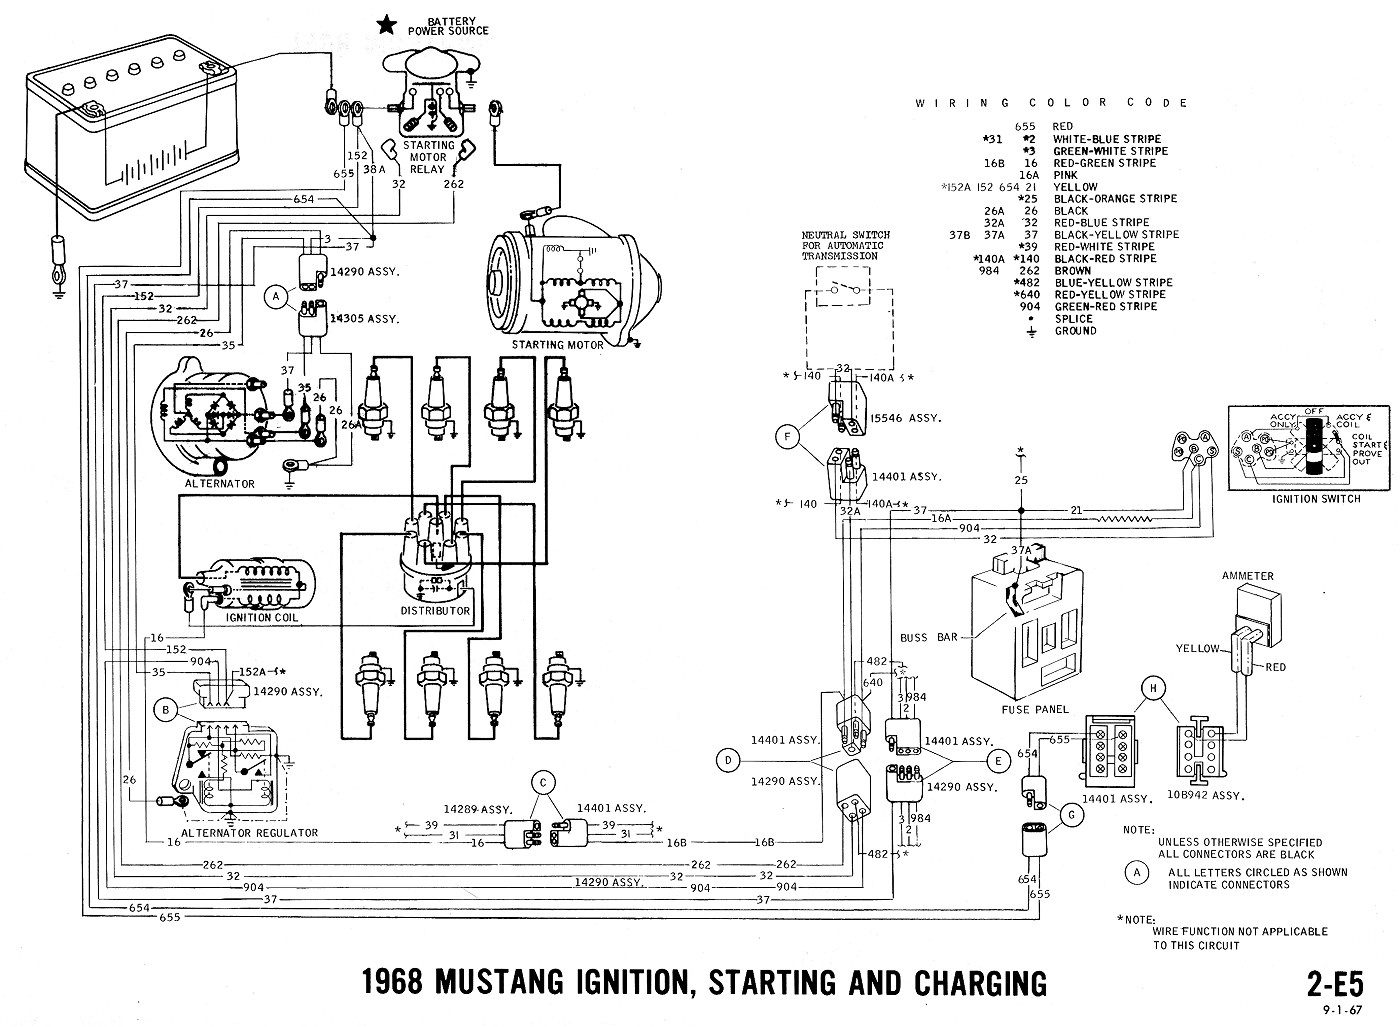 1968 Mustang Wiring Diagrams on chevy c10 starter wiring diagram